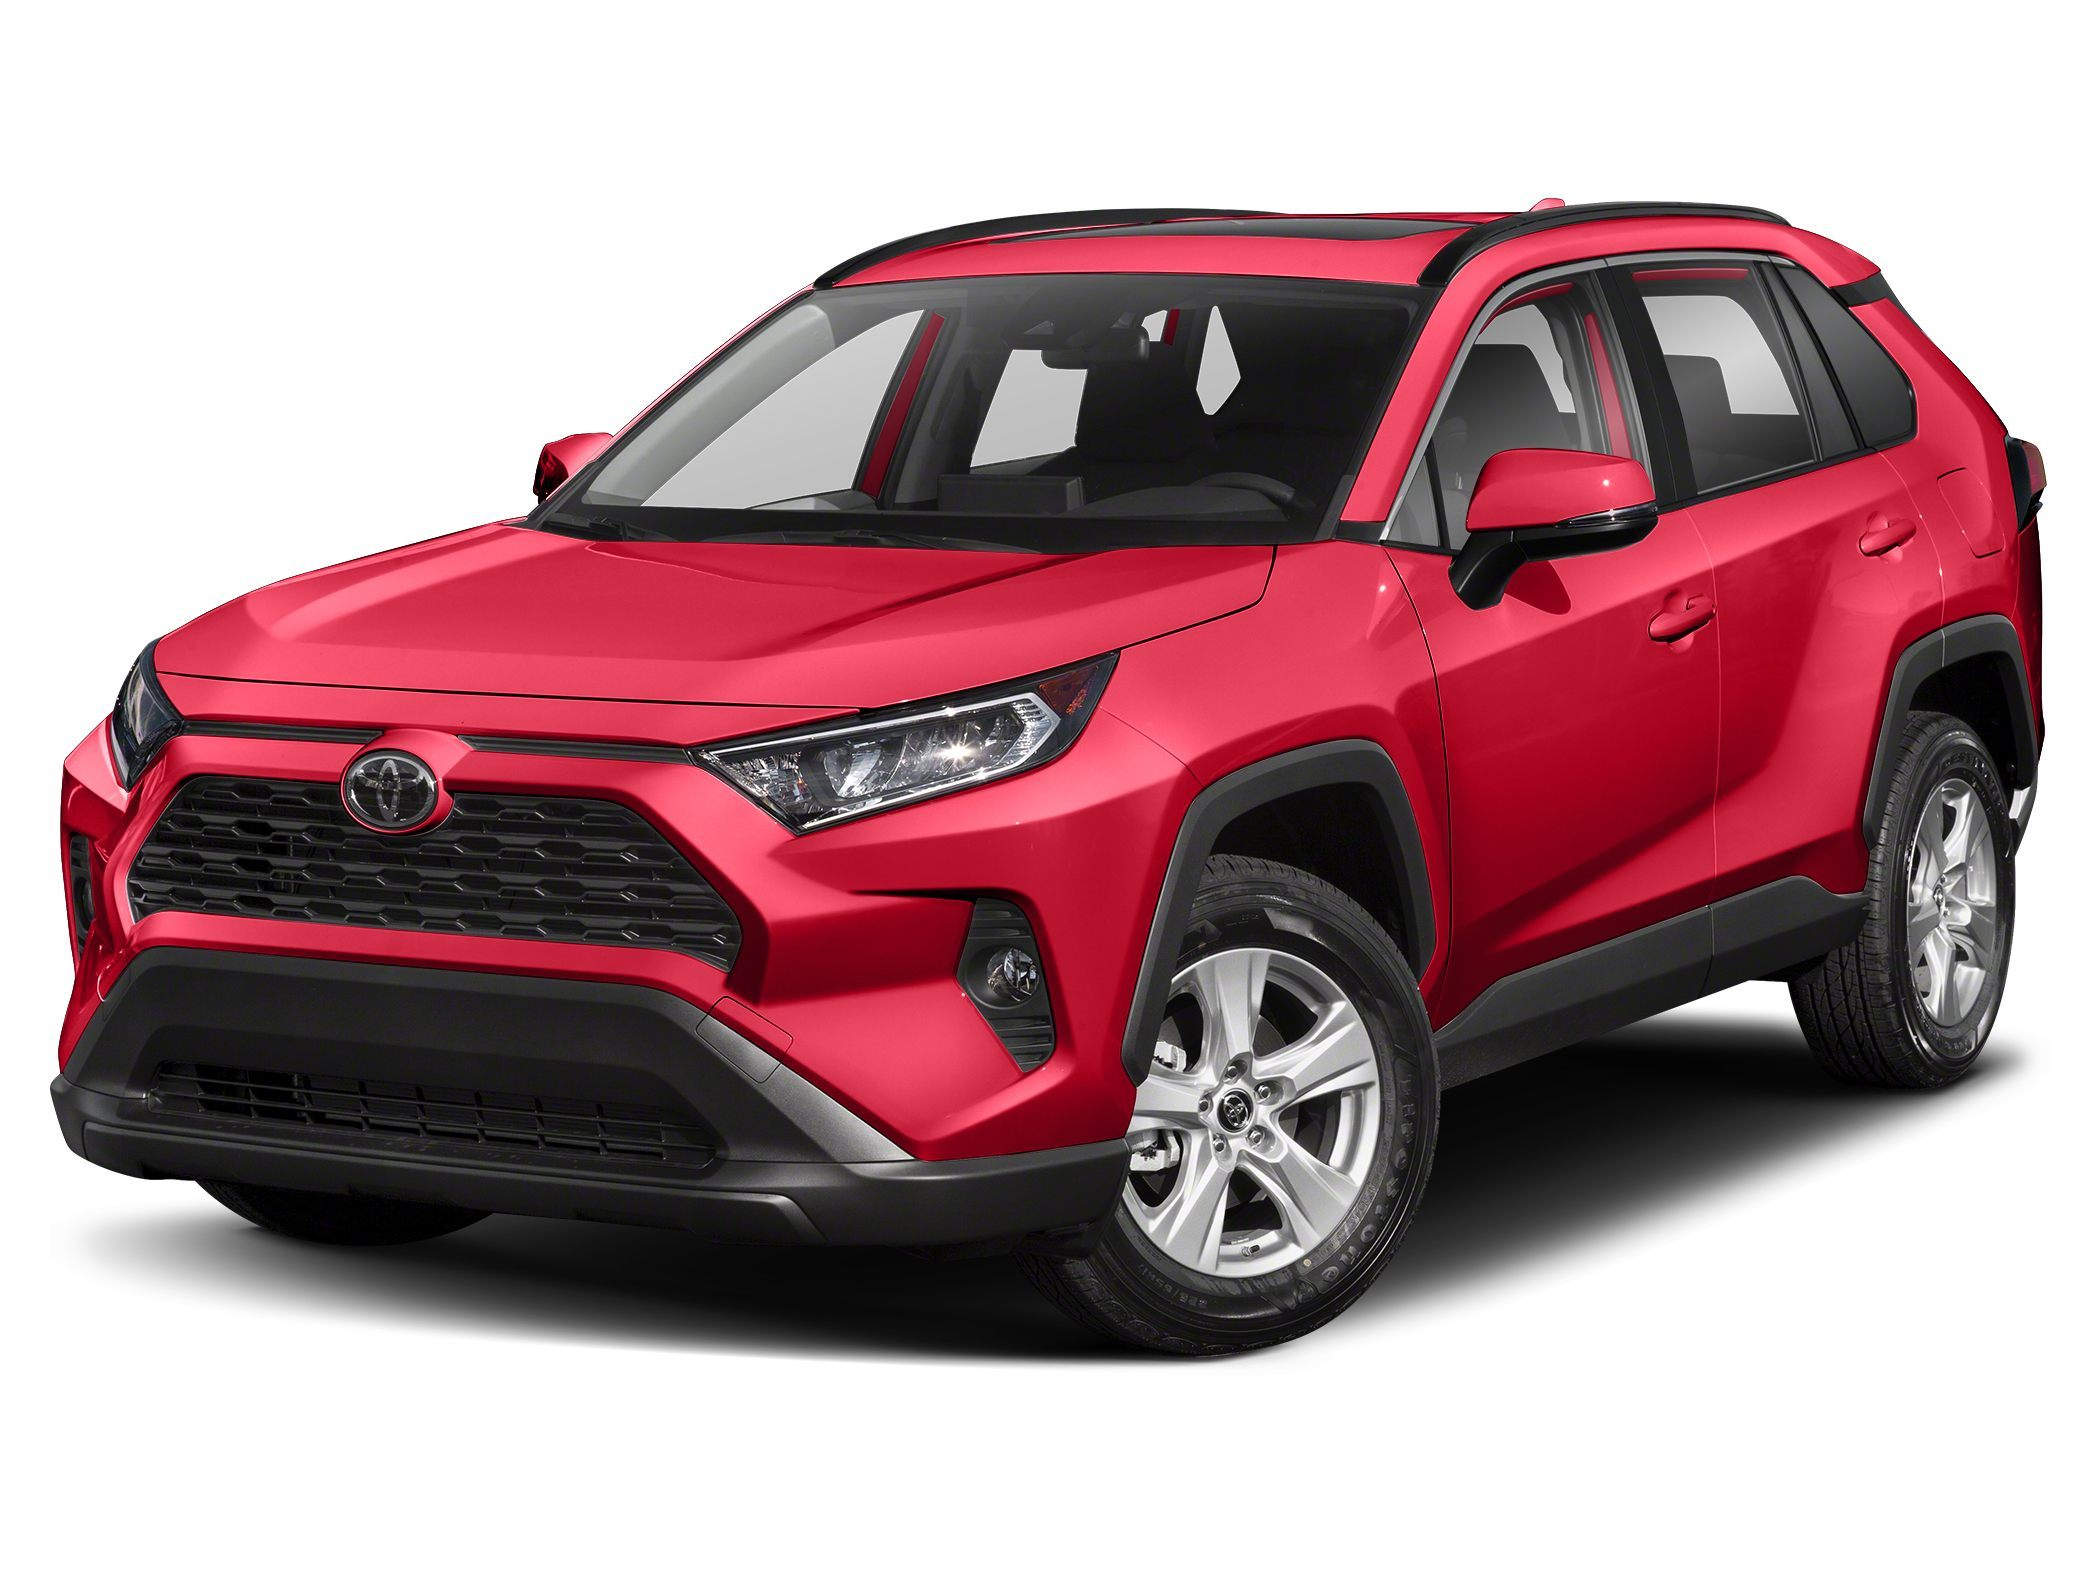 Certified 2019 Toyota RAV4 XLE with VIN 2T3P1RFV8KW070167 for sale in Maplewood, Minnesota